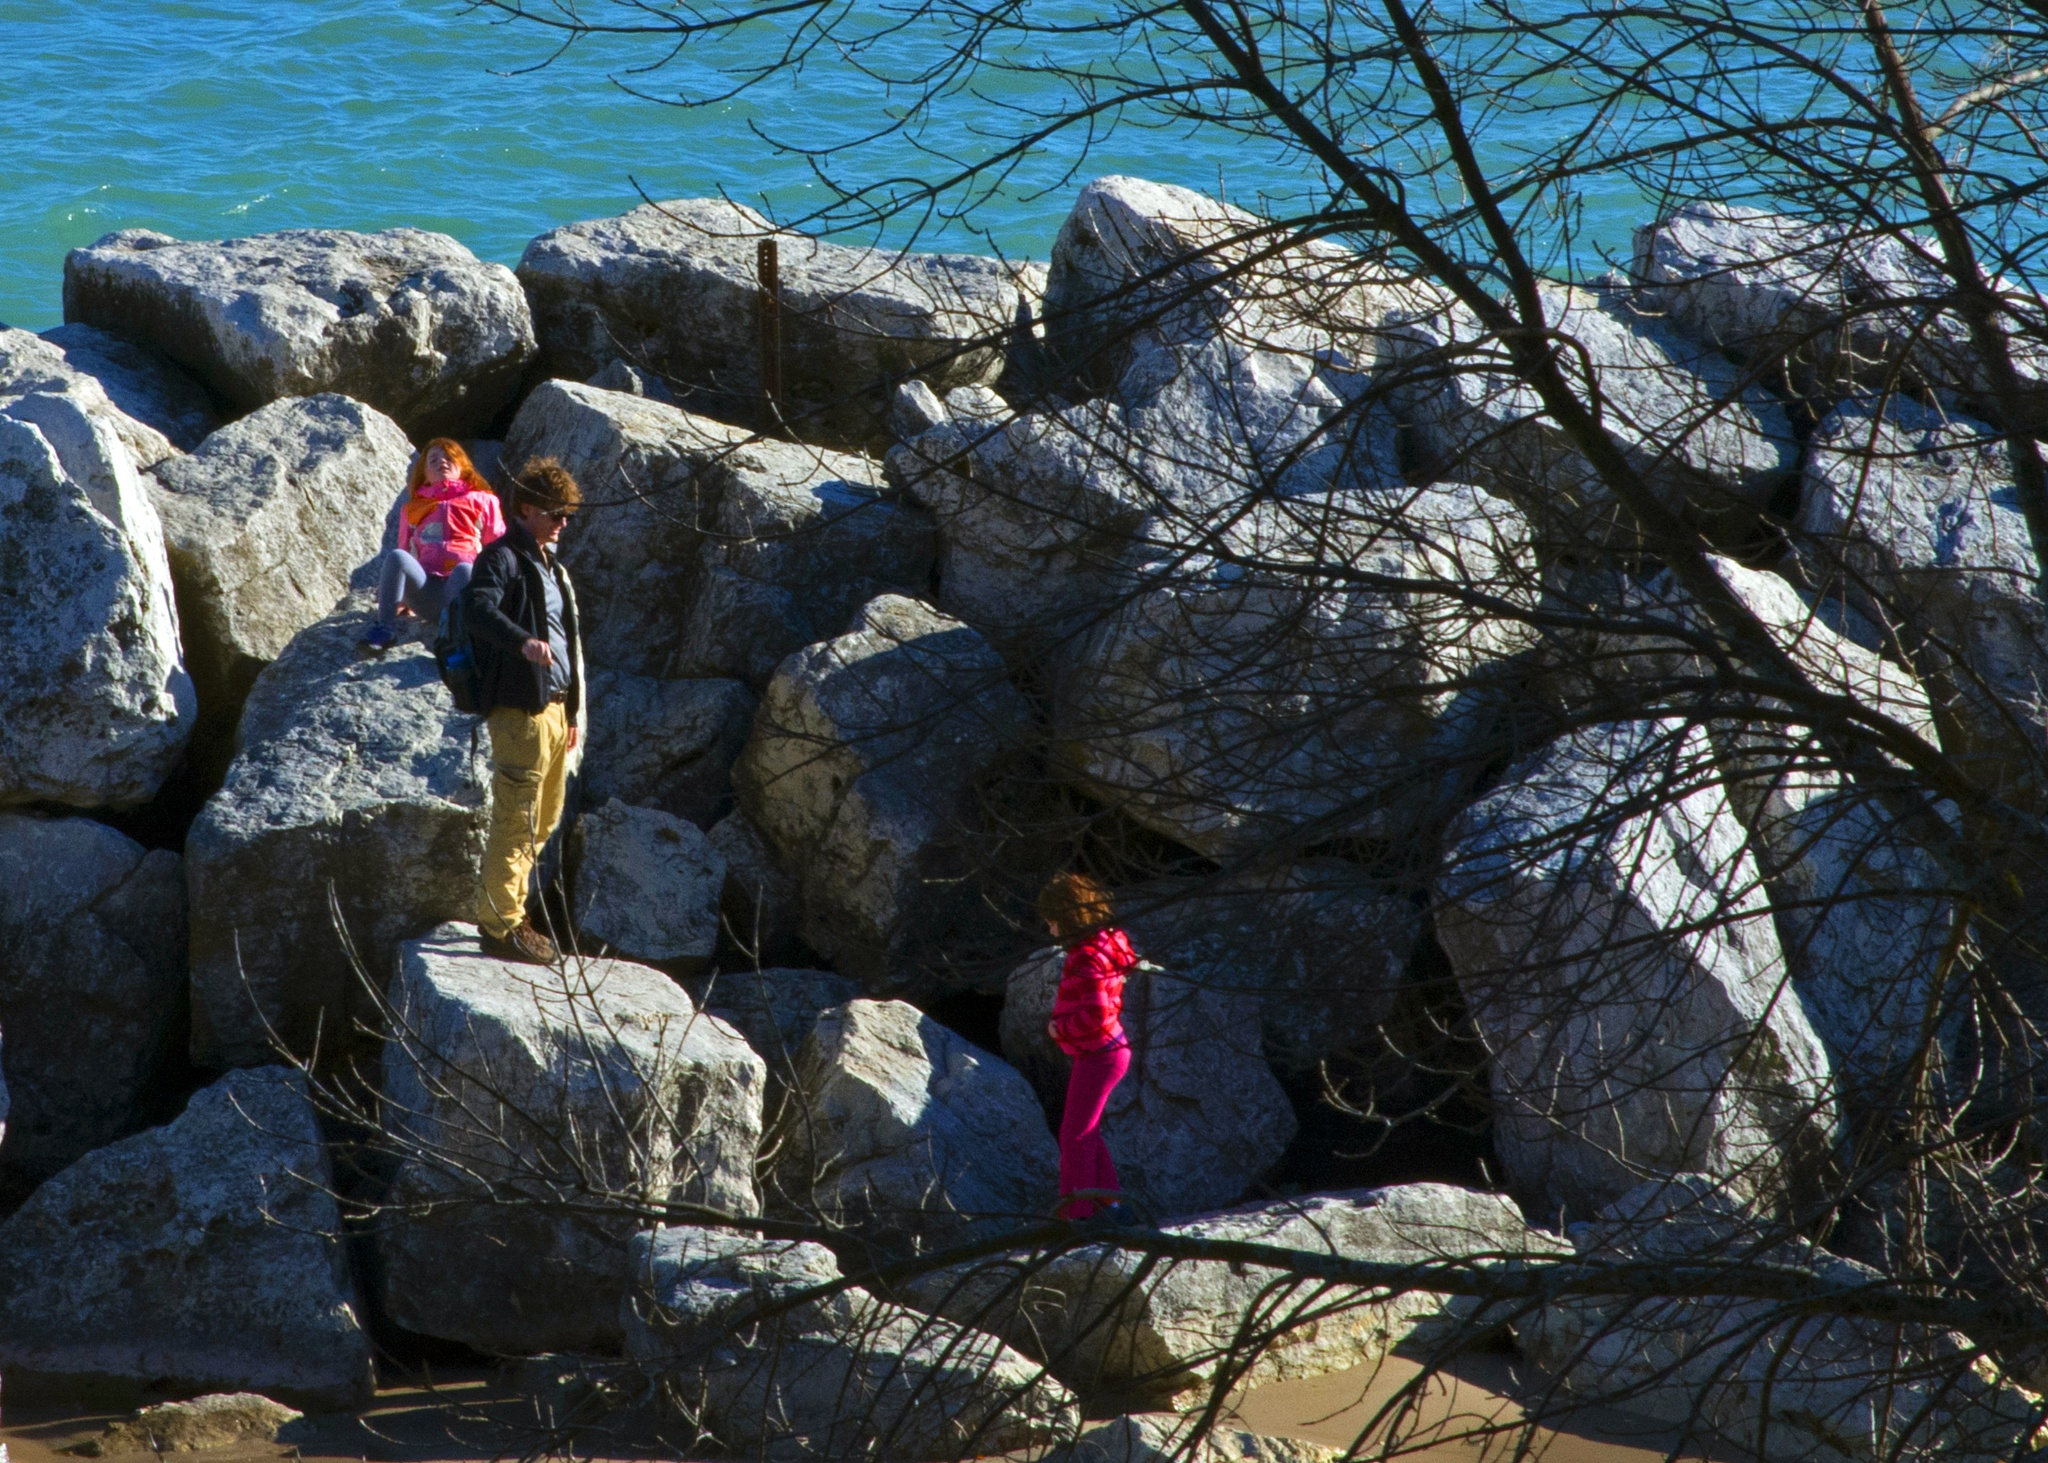 Children at the Lake 1101 by ThomasJerger